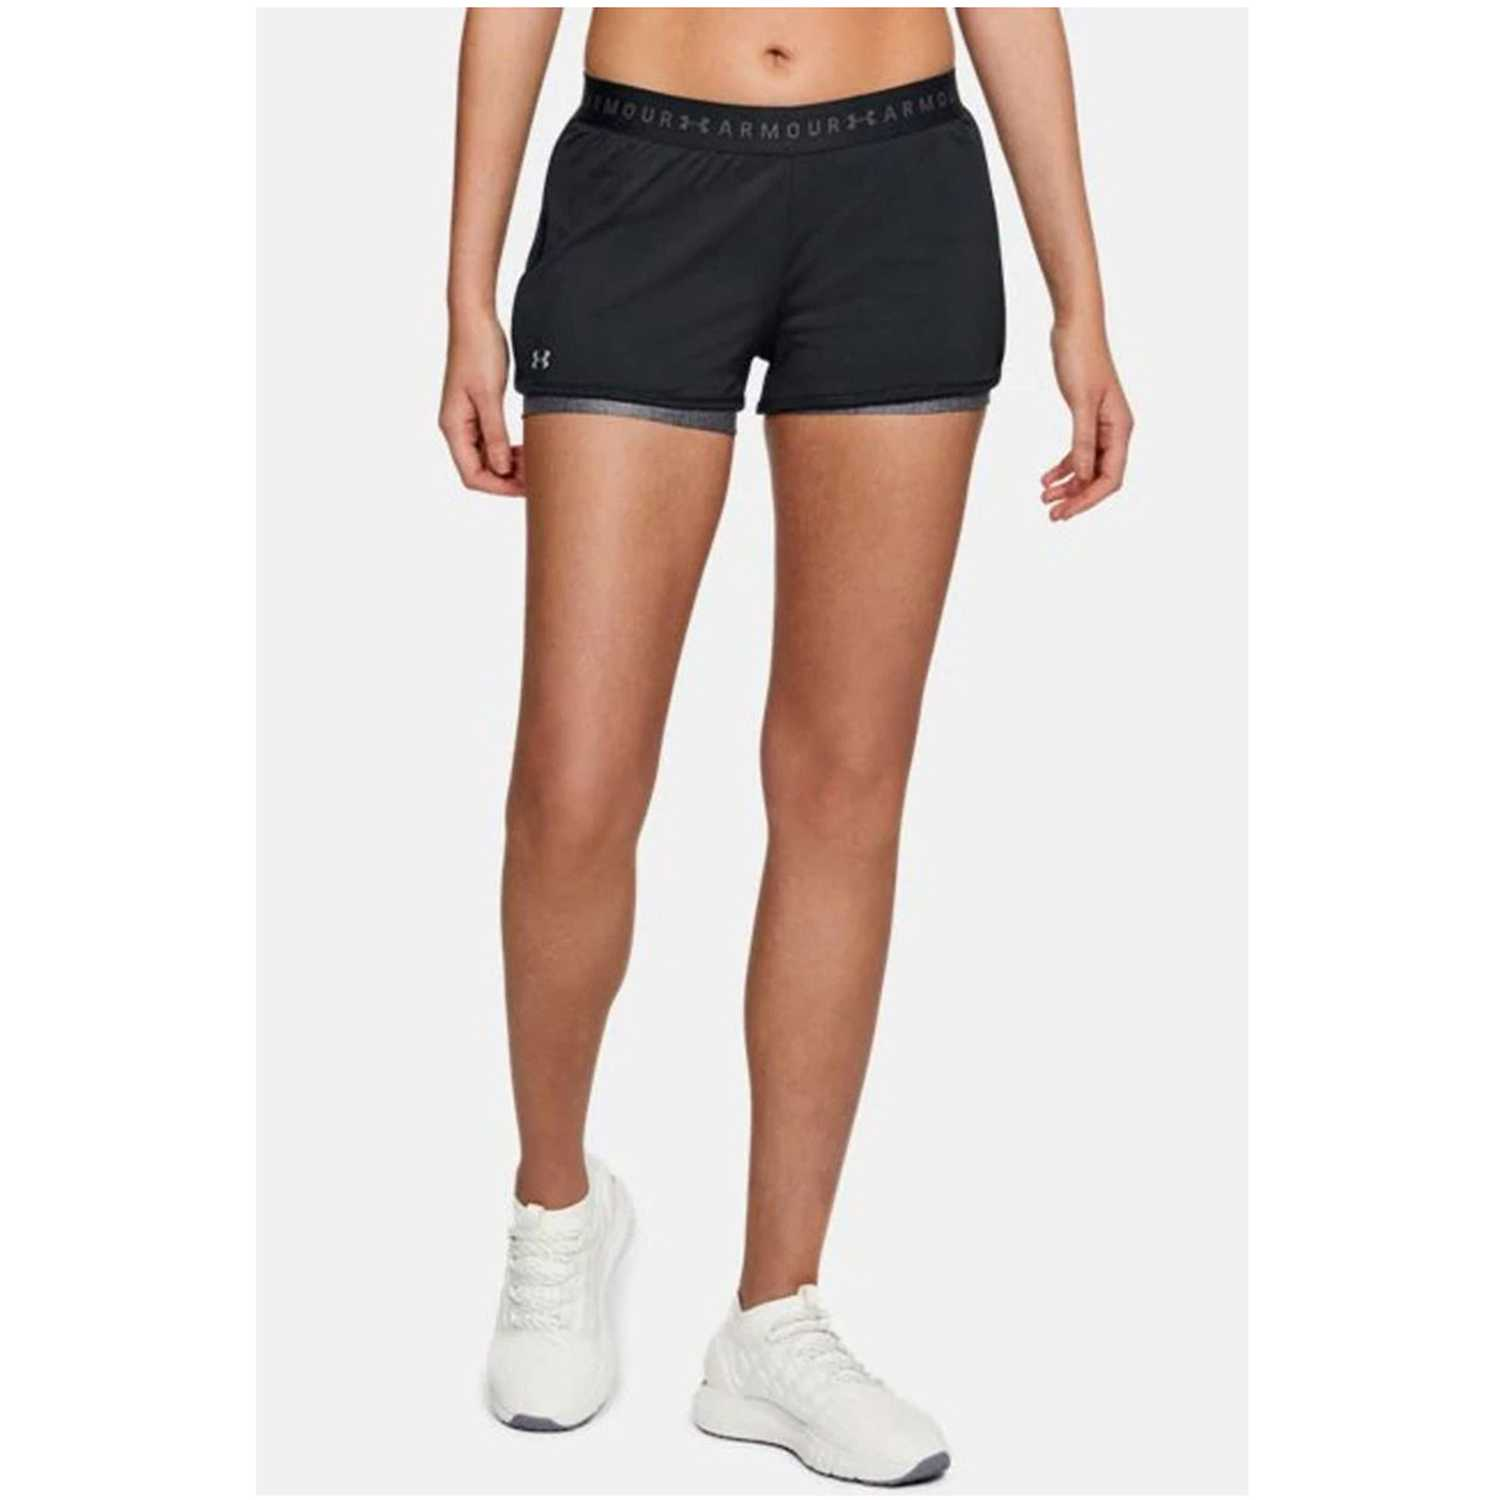 Under Armour hg armour 2-in-1 short Negro Shorts Deportivos